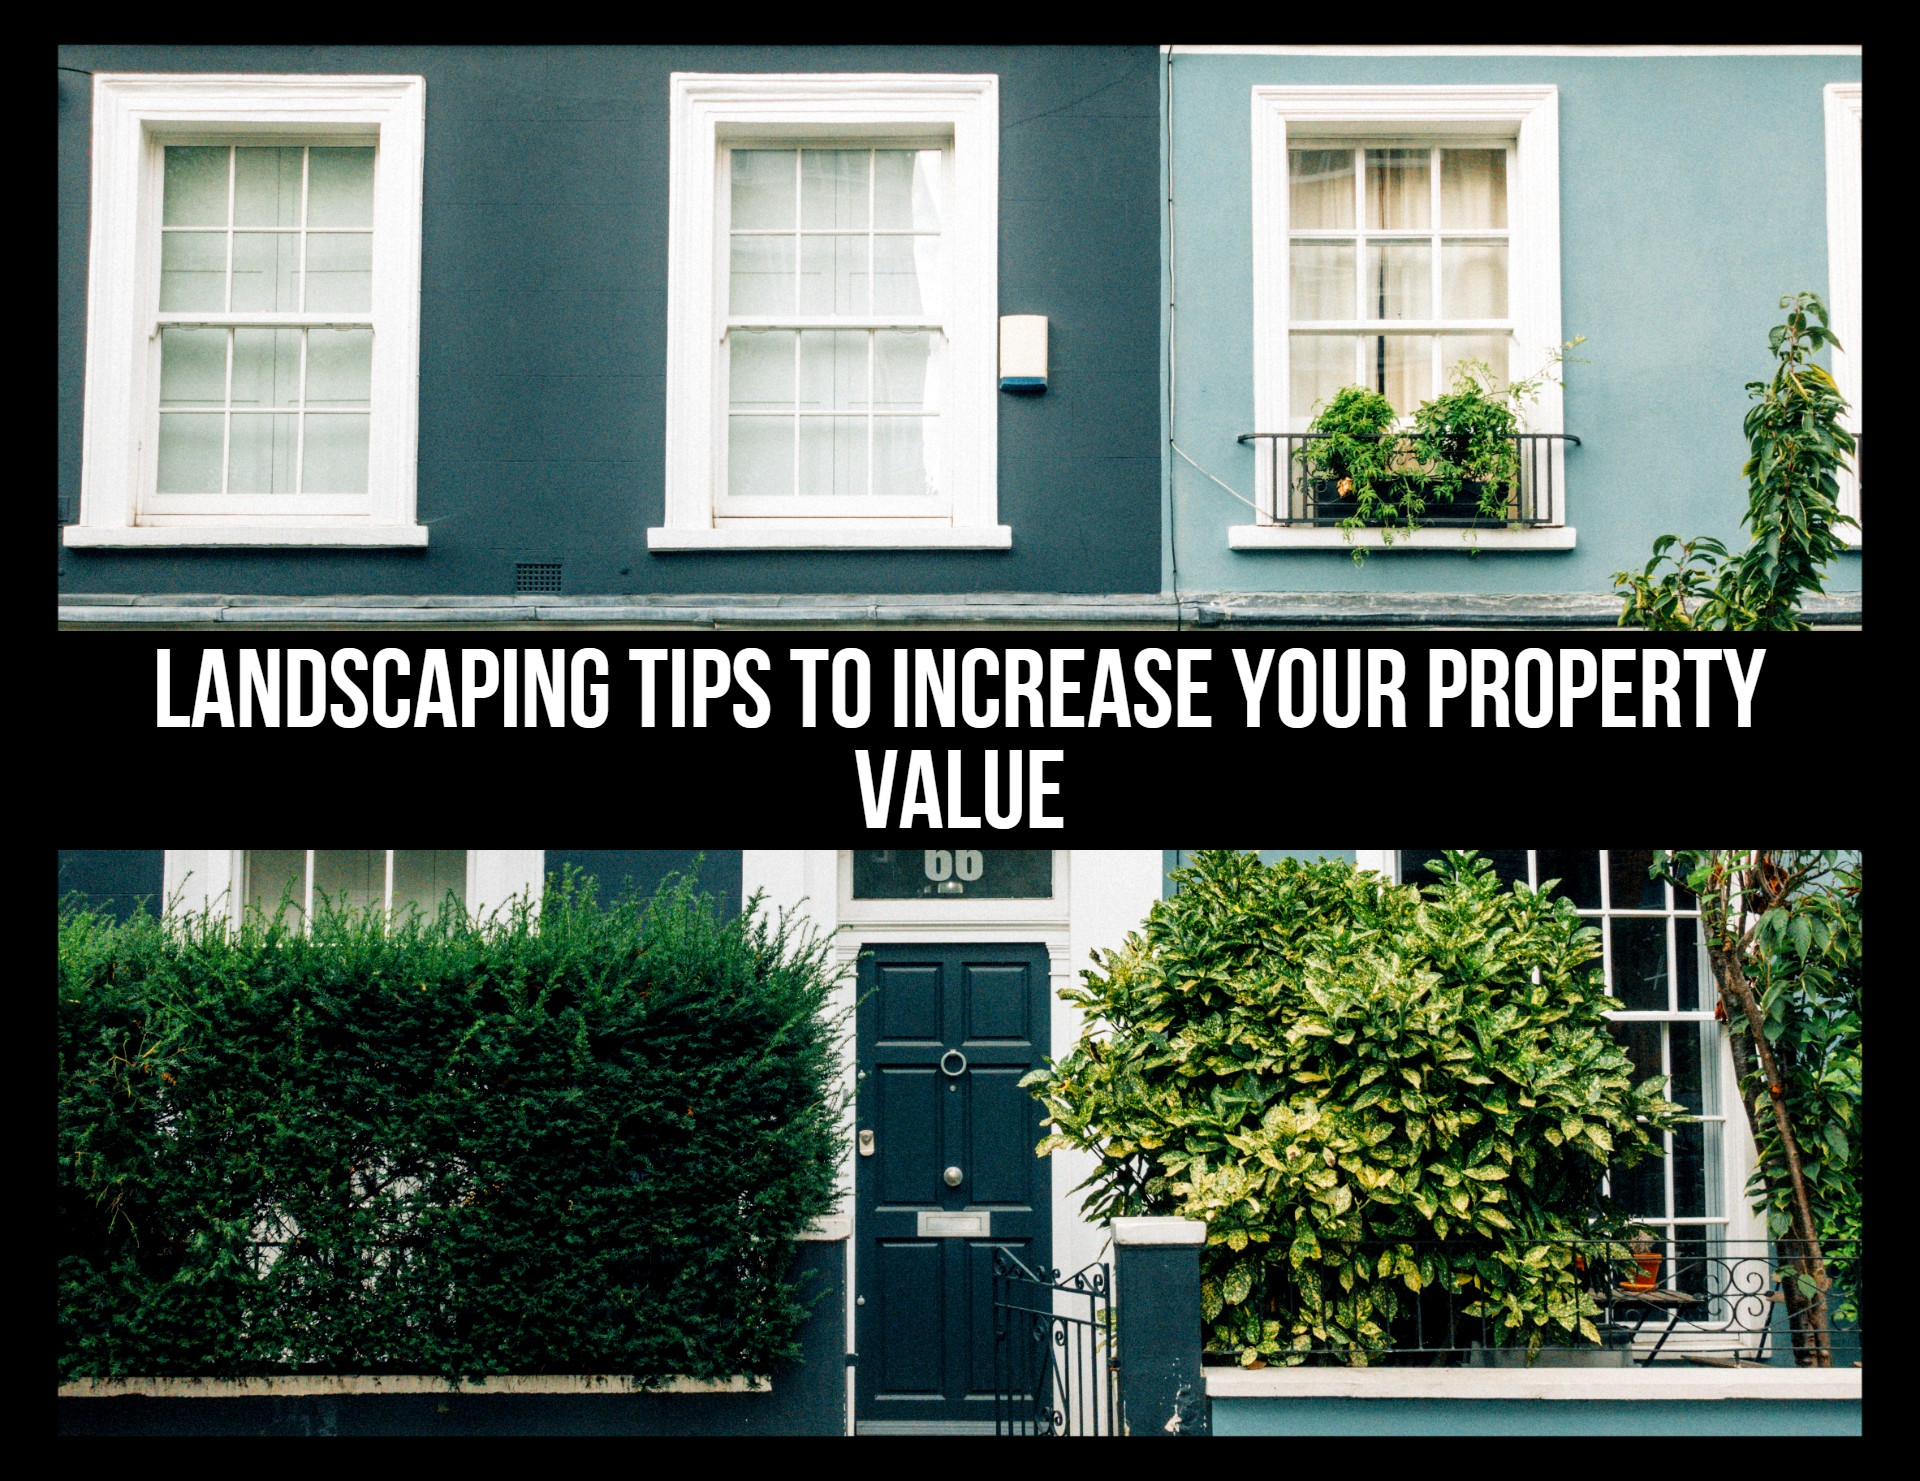 Landscaping Tips to Increase your Property Value